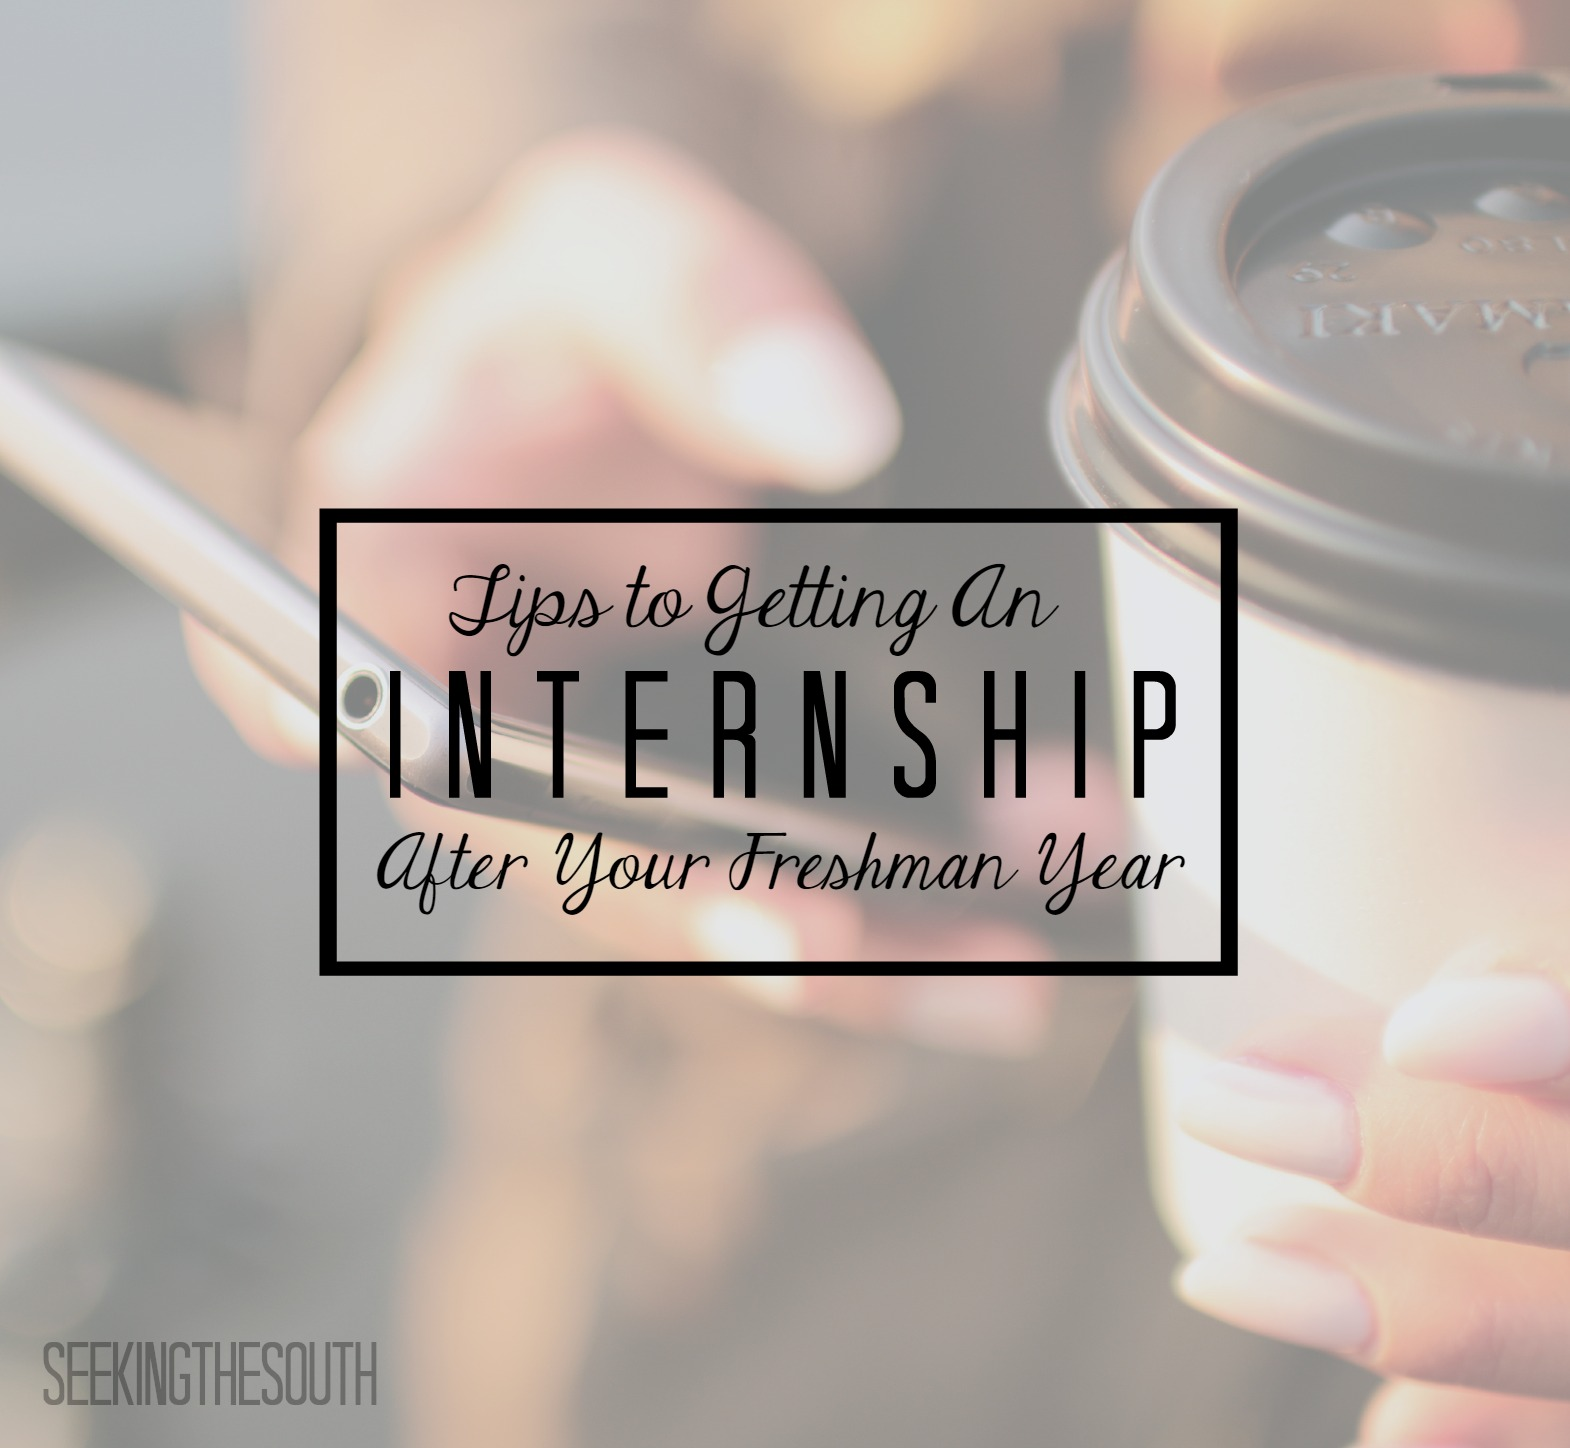 how to get an internship after your freshman year seeking the south how to get an internship after your freshman year